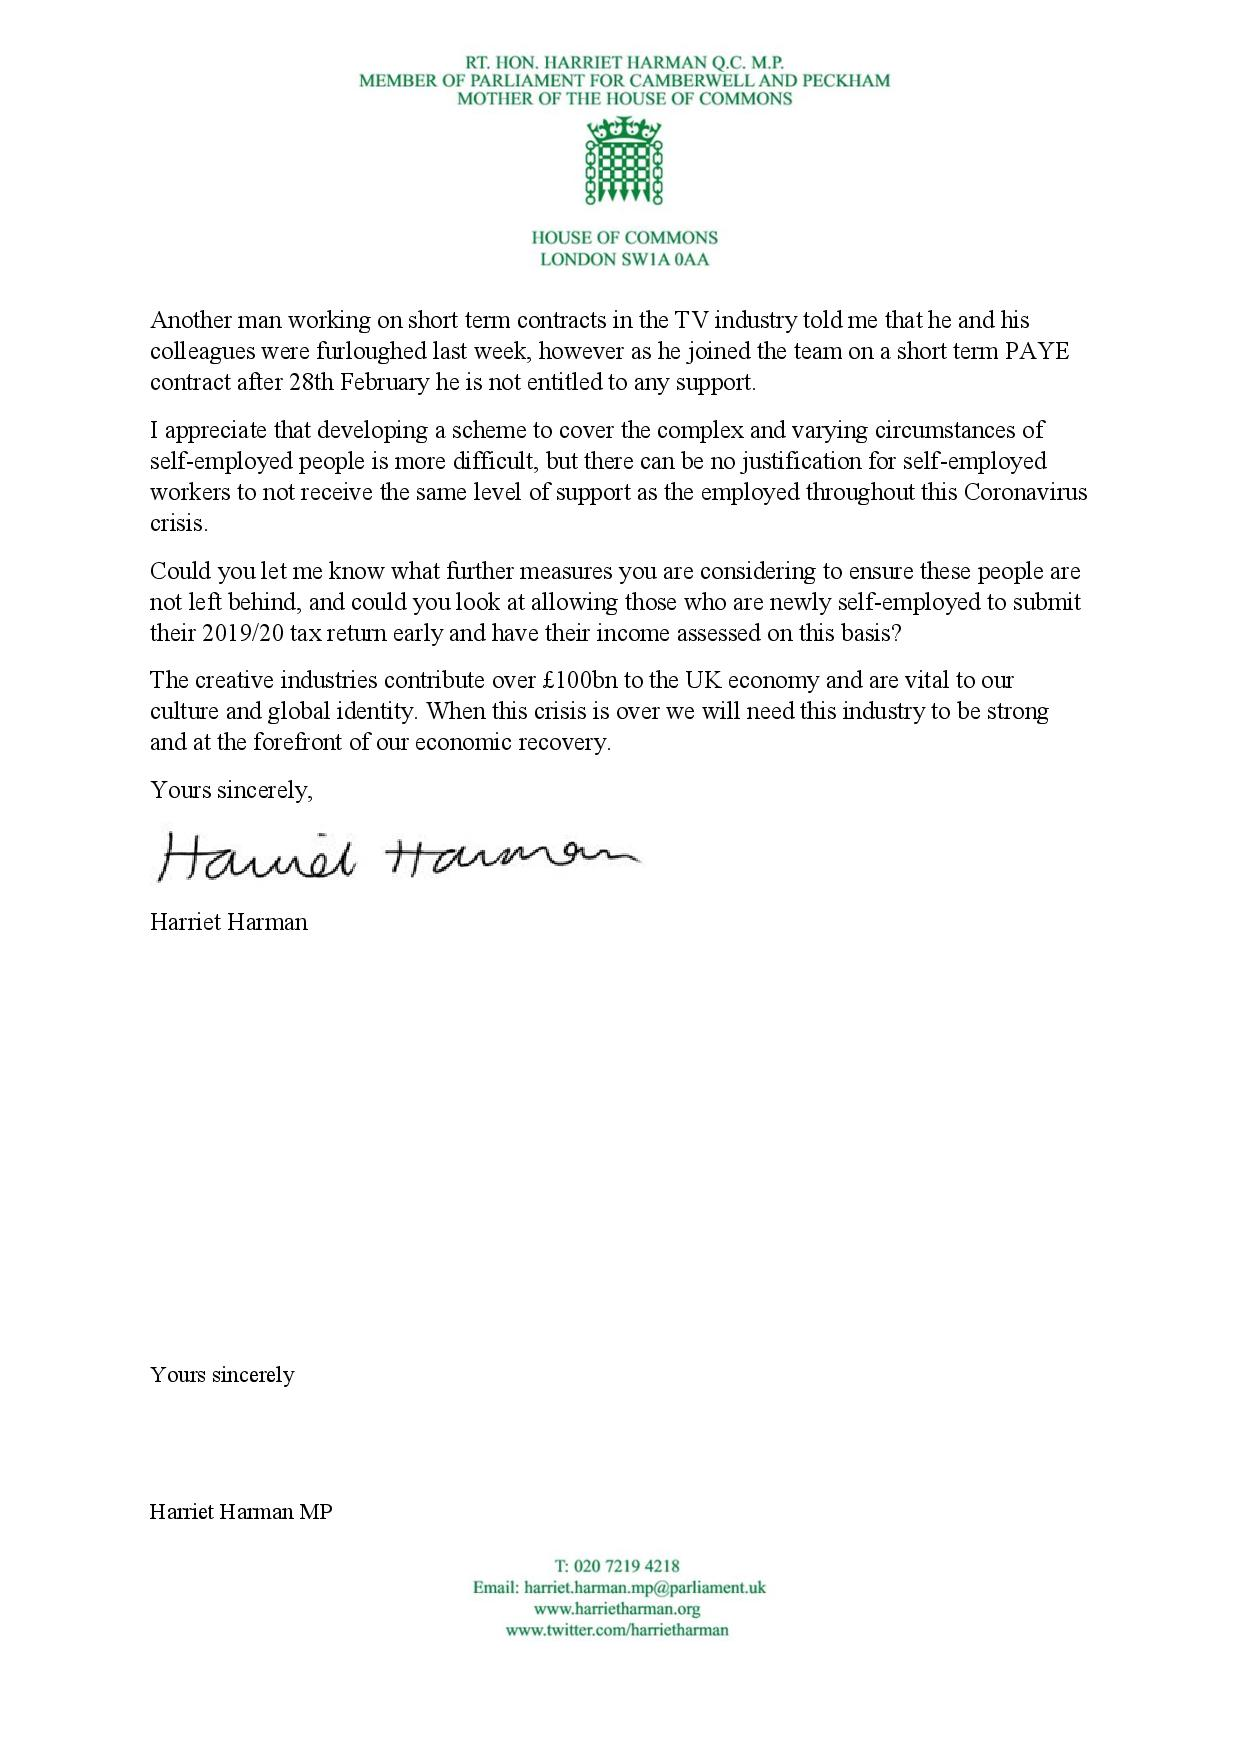 Letter_from_Rt_Hon_Harriet_Harman_QC_MP_to_the_Chancellor_01.04.2020-page-002.jpg